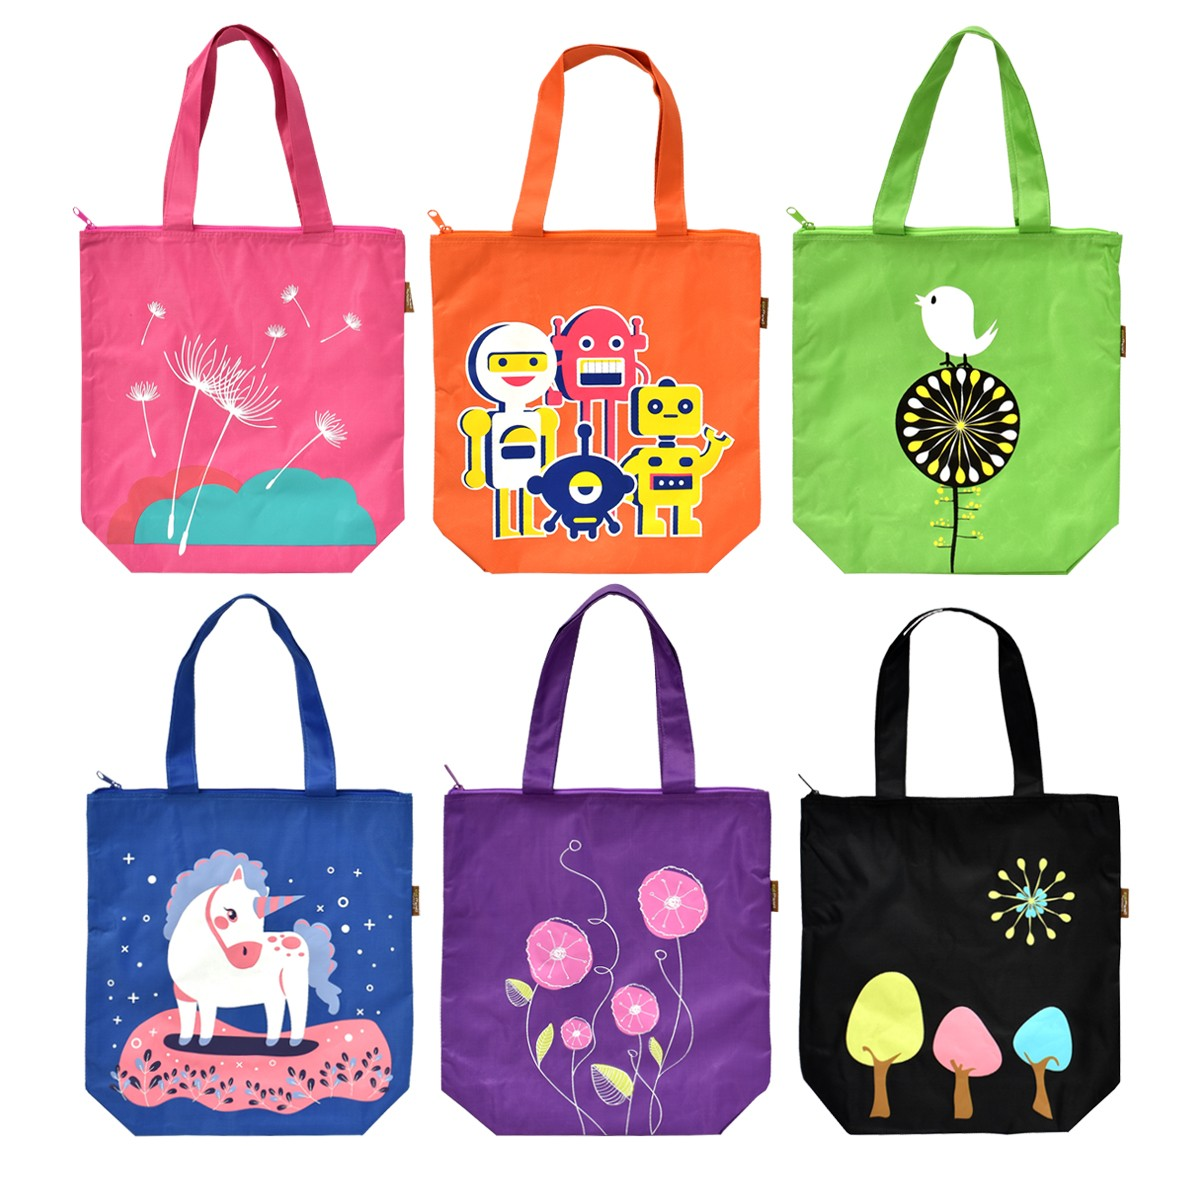 Unicorn Tuition Bag UTB-1314C Asst (6 pcs)